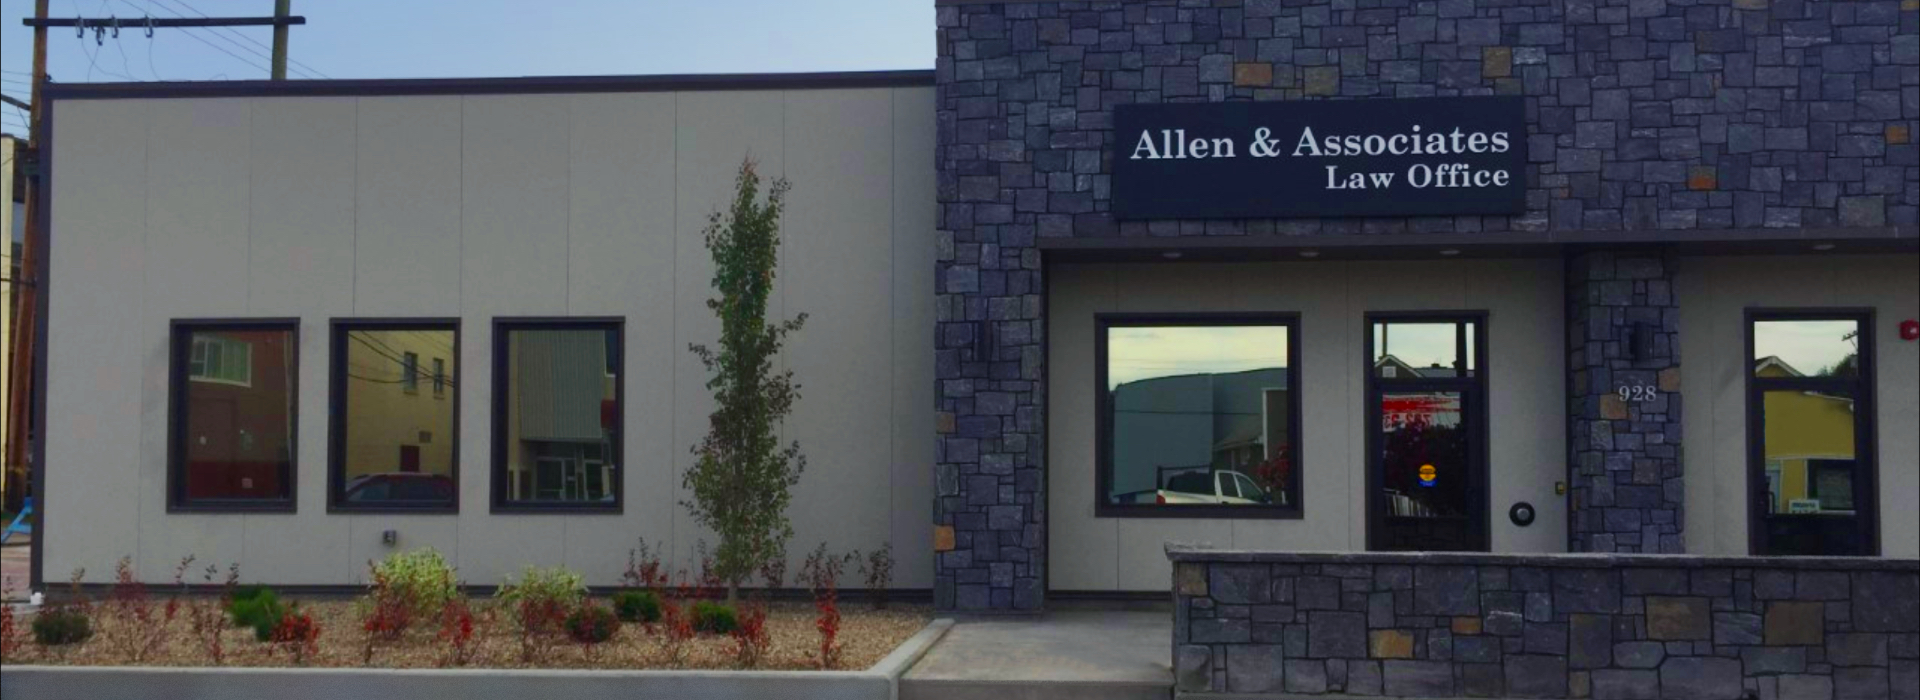 Allen & Associates Law Office in Dawson Creek, BC